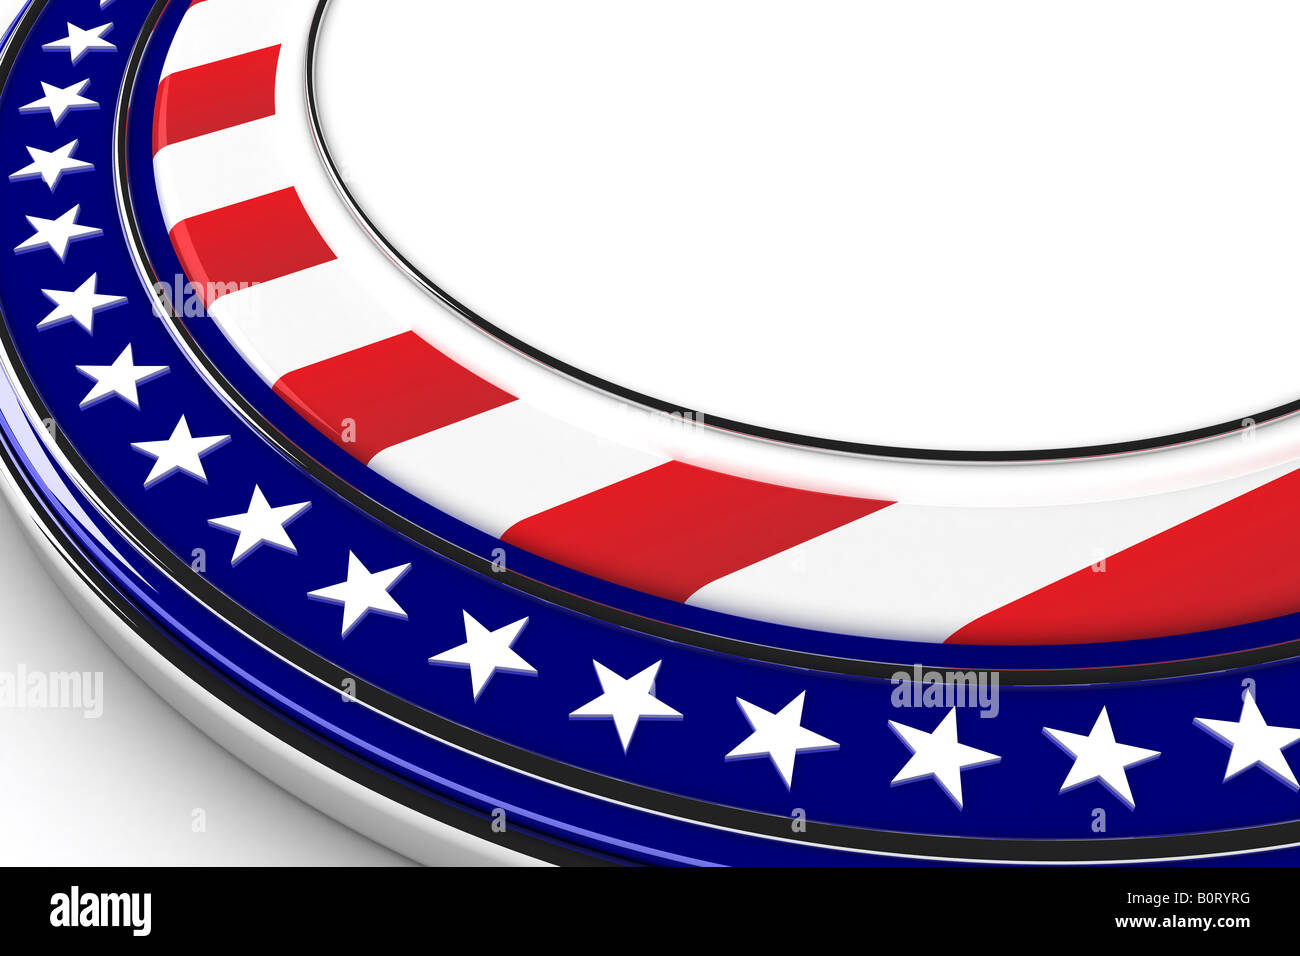 US elections button with white space for custom message - Stock Image